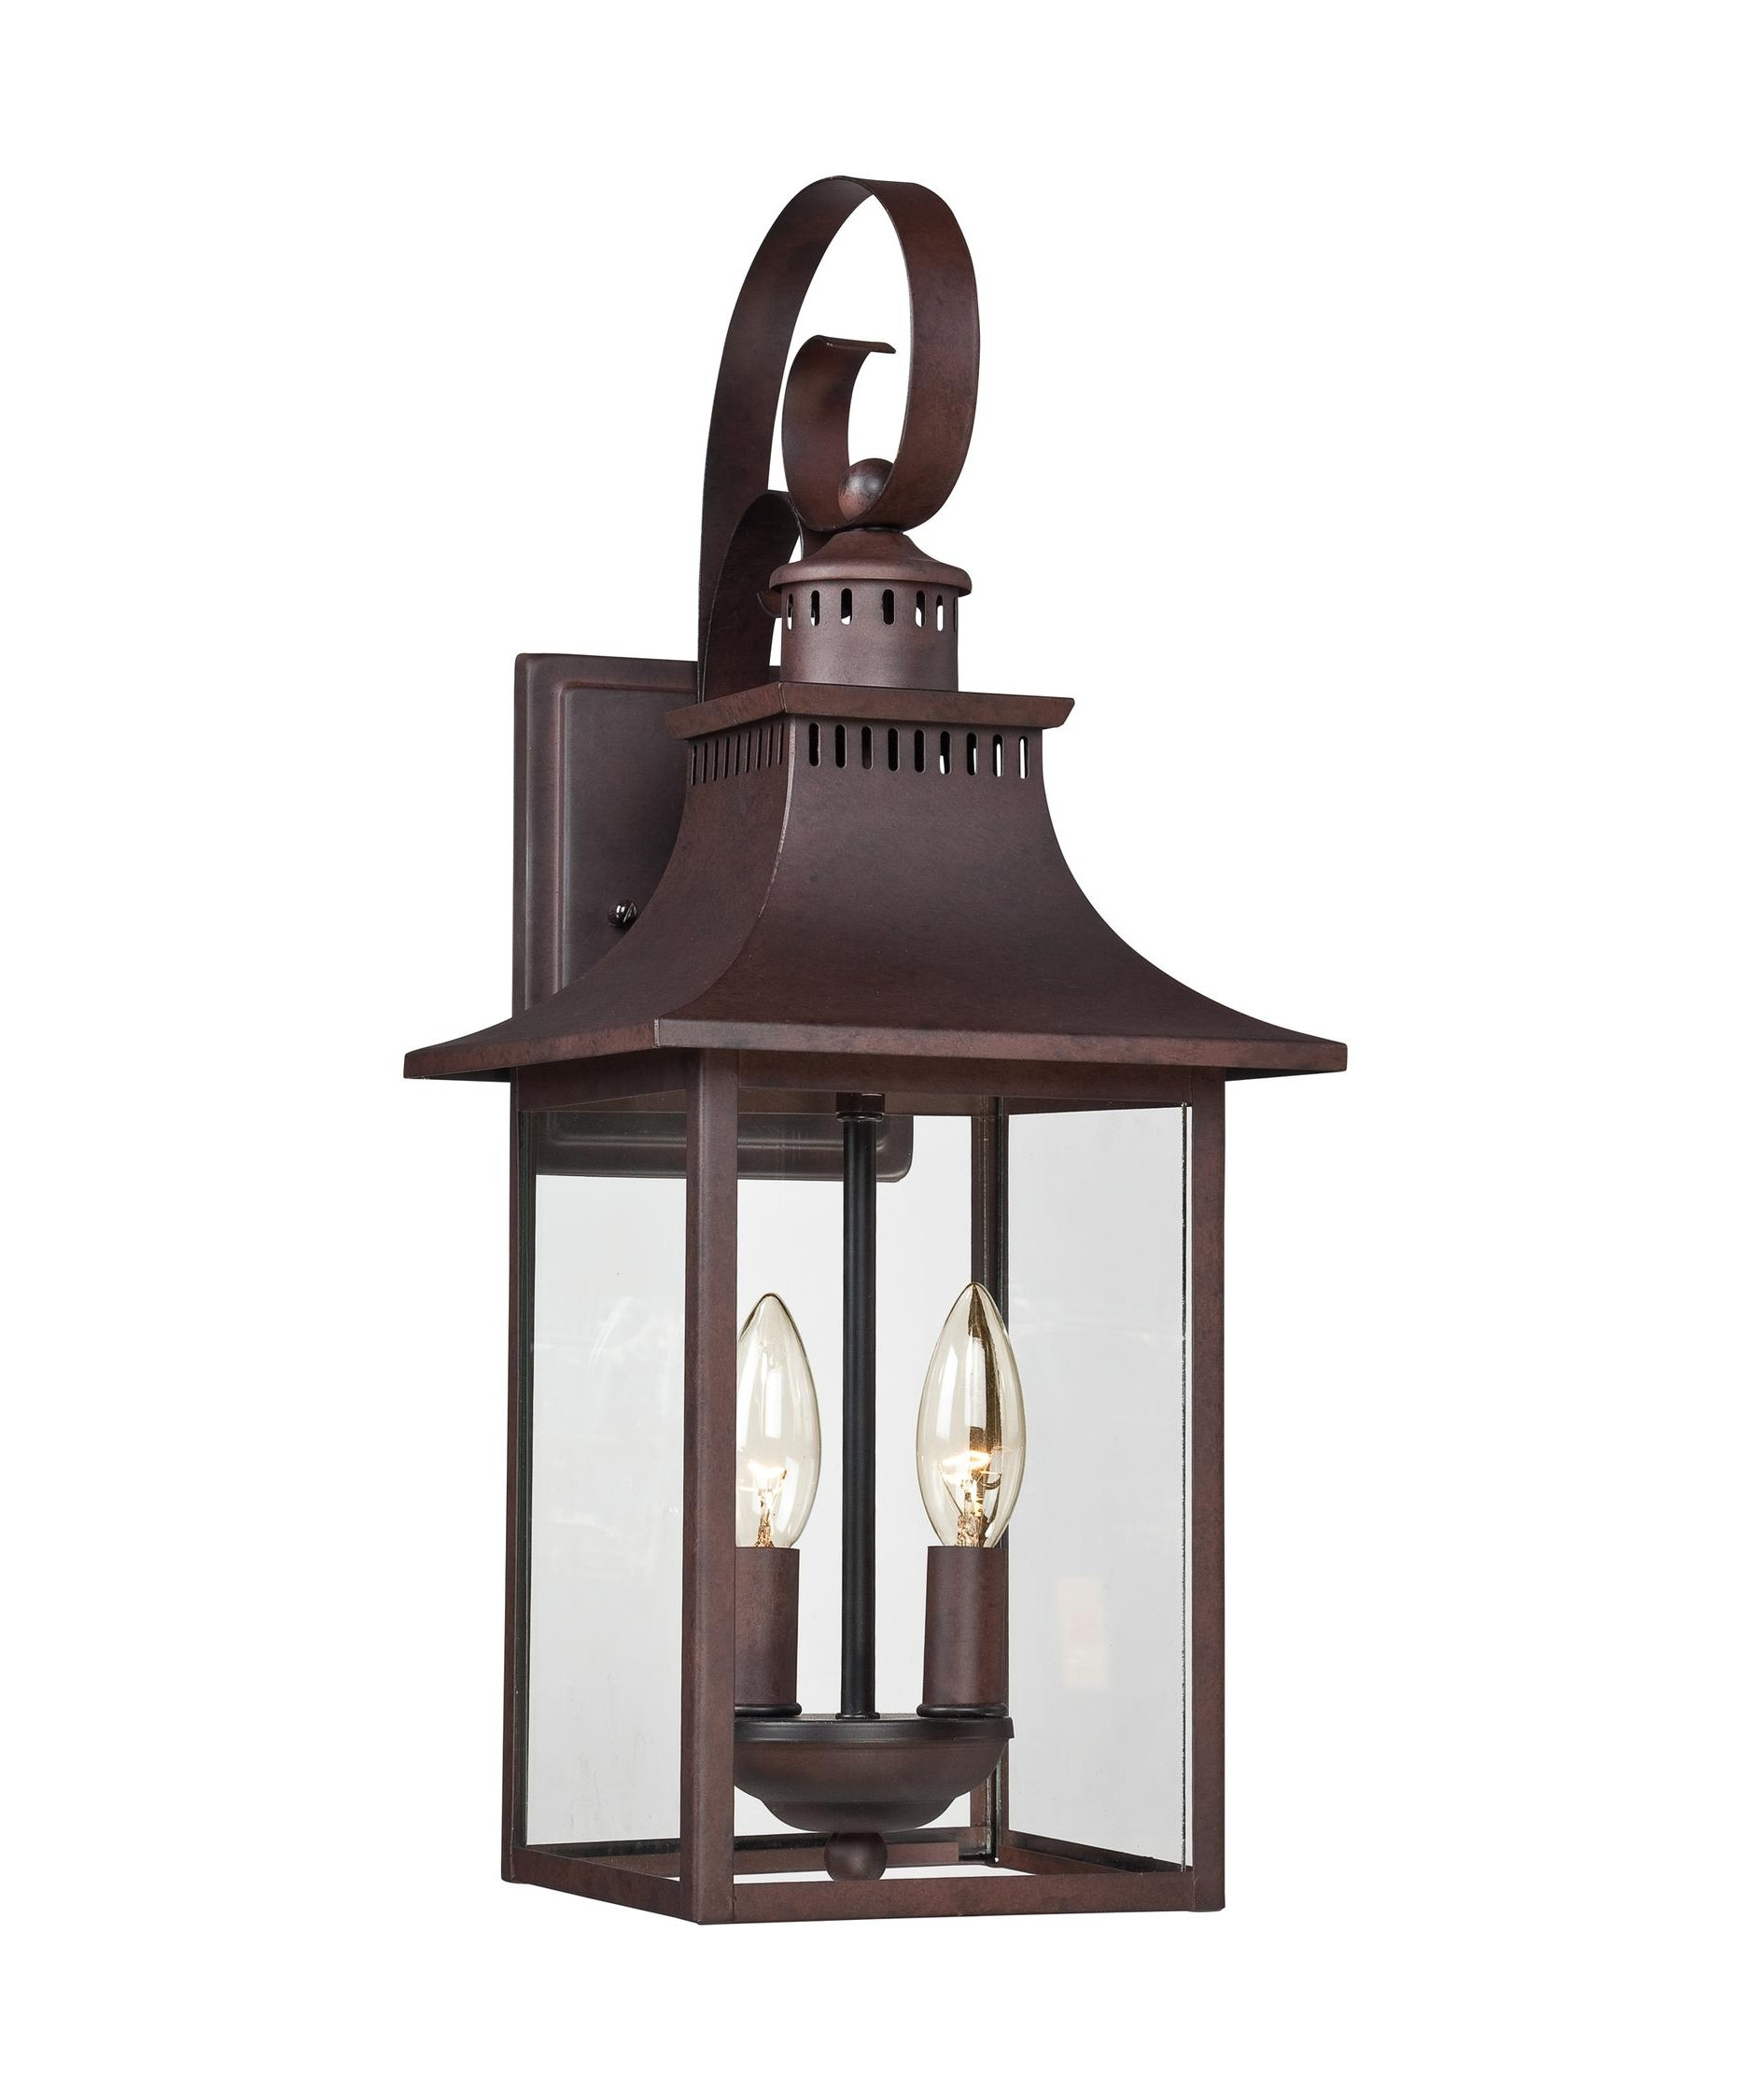 2019 Quoizel Ccr8408 Chancellor 8 Inch Wide 2 Light Outdoor Wall Light Throughout Copper Outdoor Lanterns (View 2 of 20)